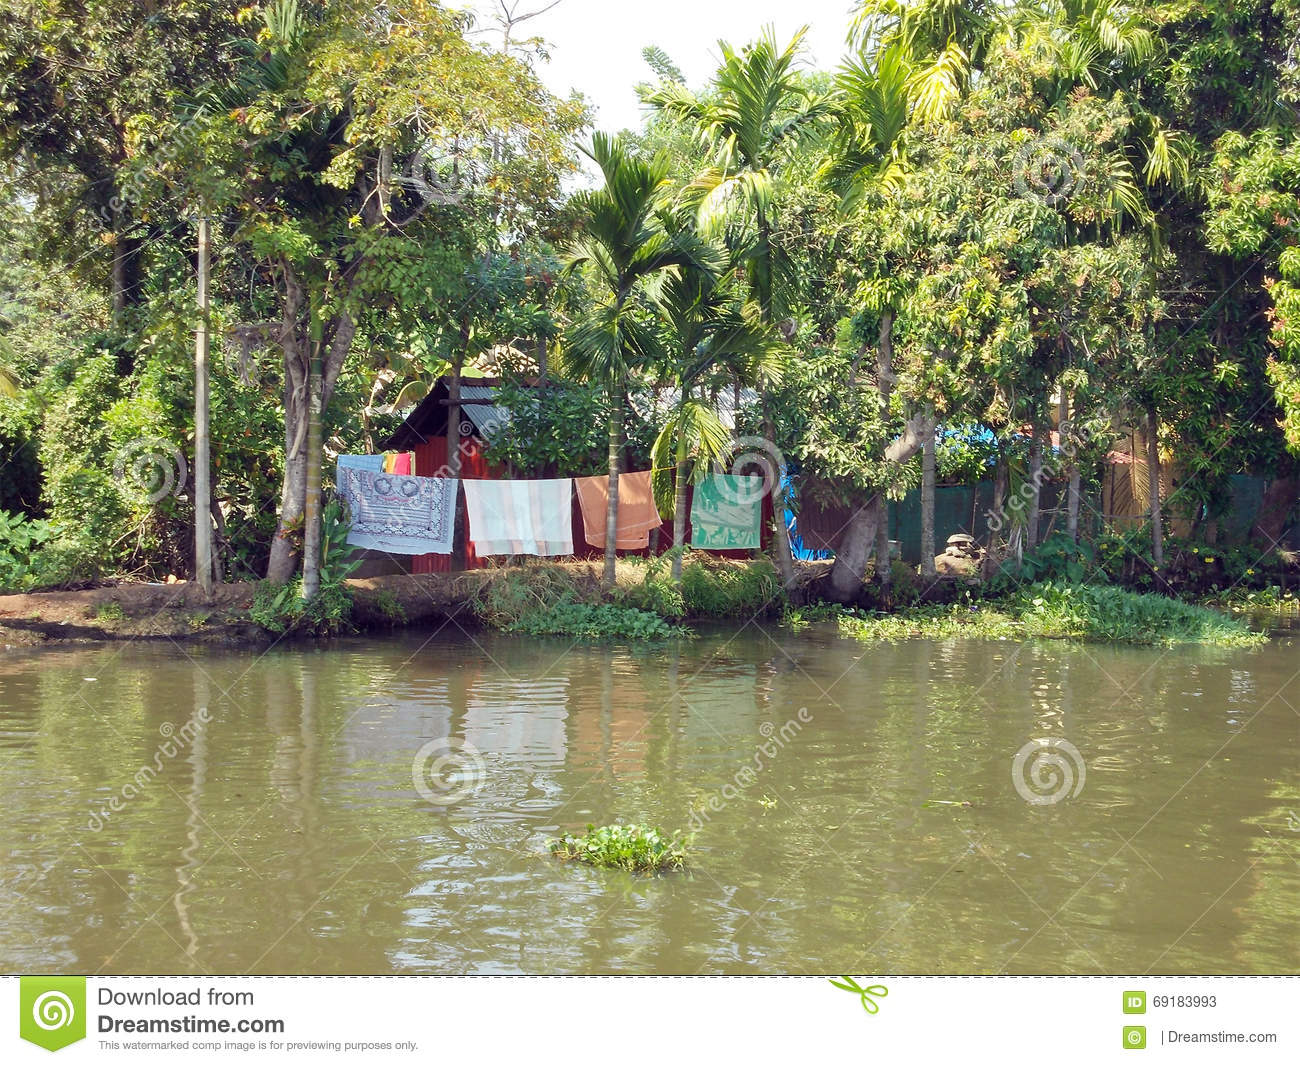 Life on the backwaters of Alleppey